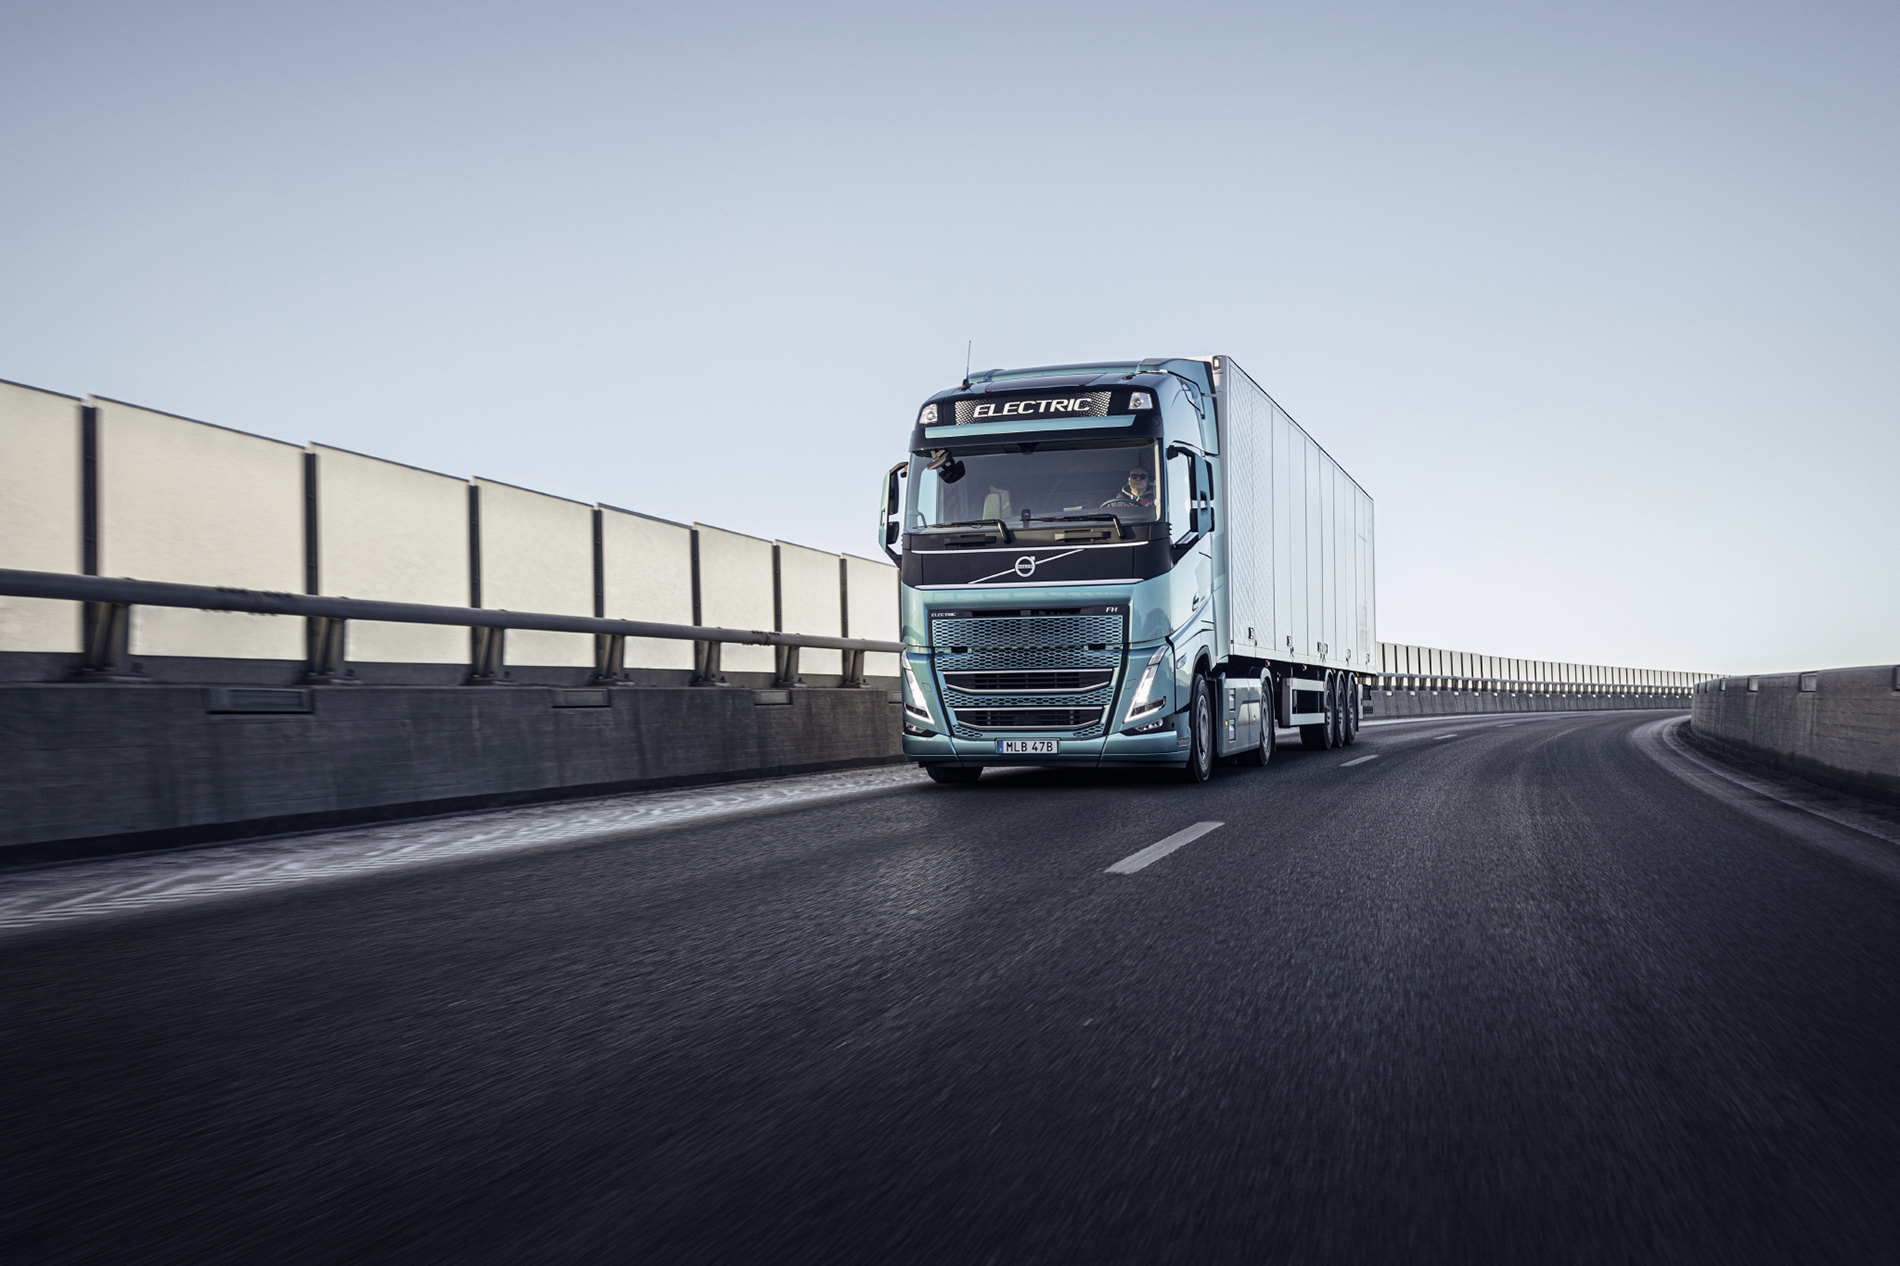 Volvo FM FH electric truck tractor cab units